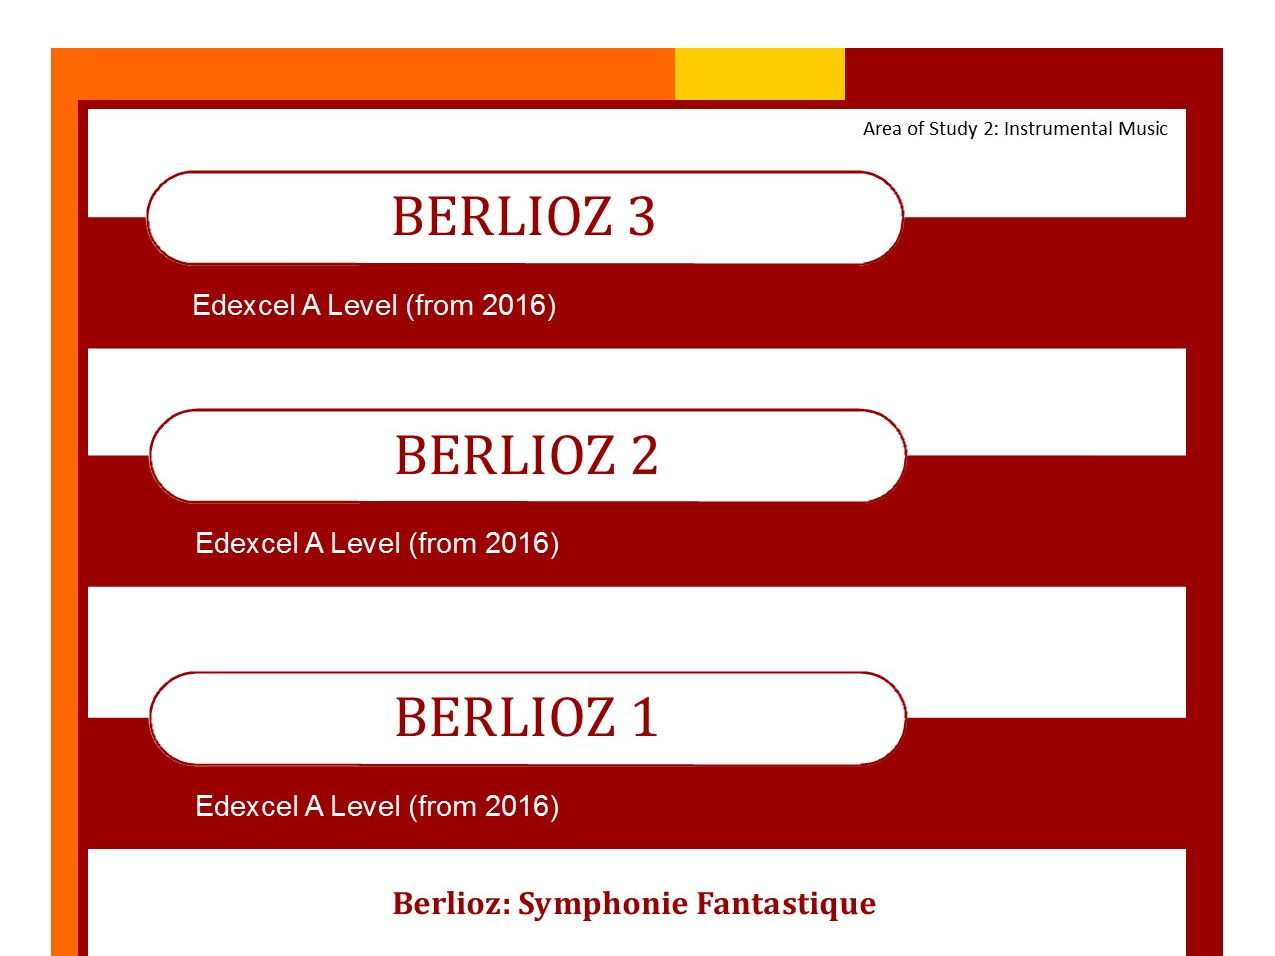 Edexcel Music A Level Berlioz Bundle